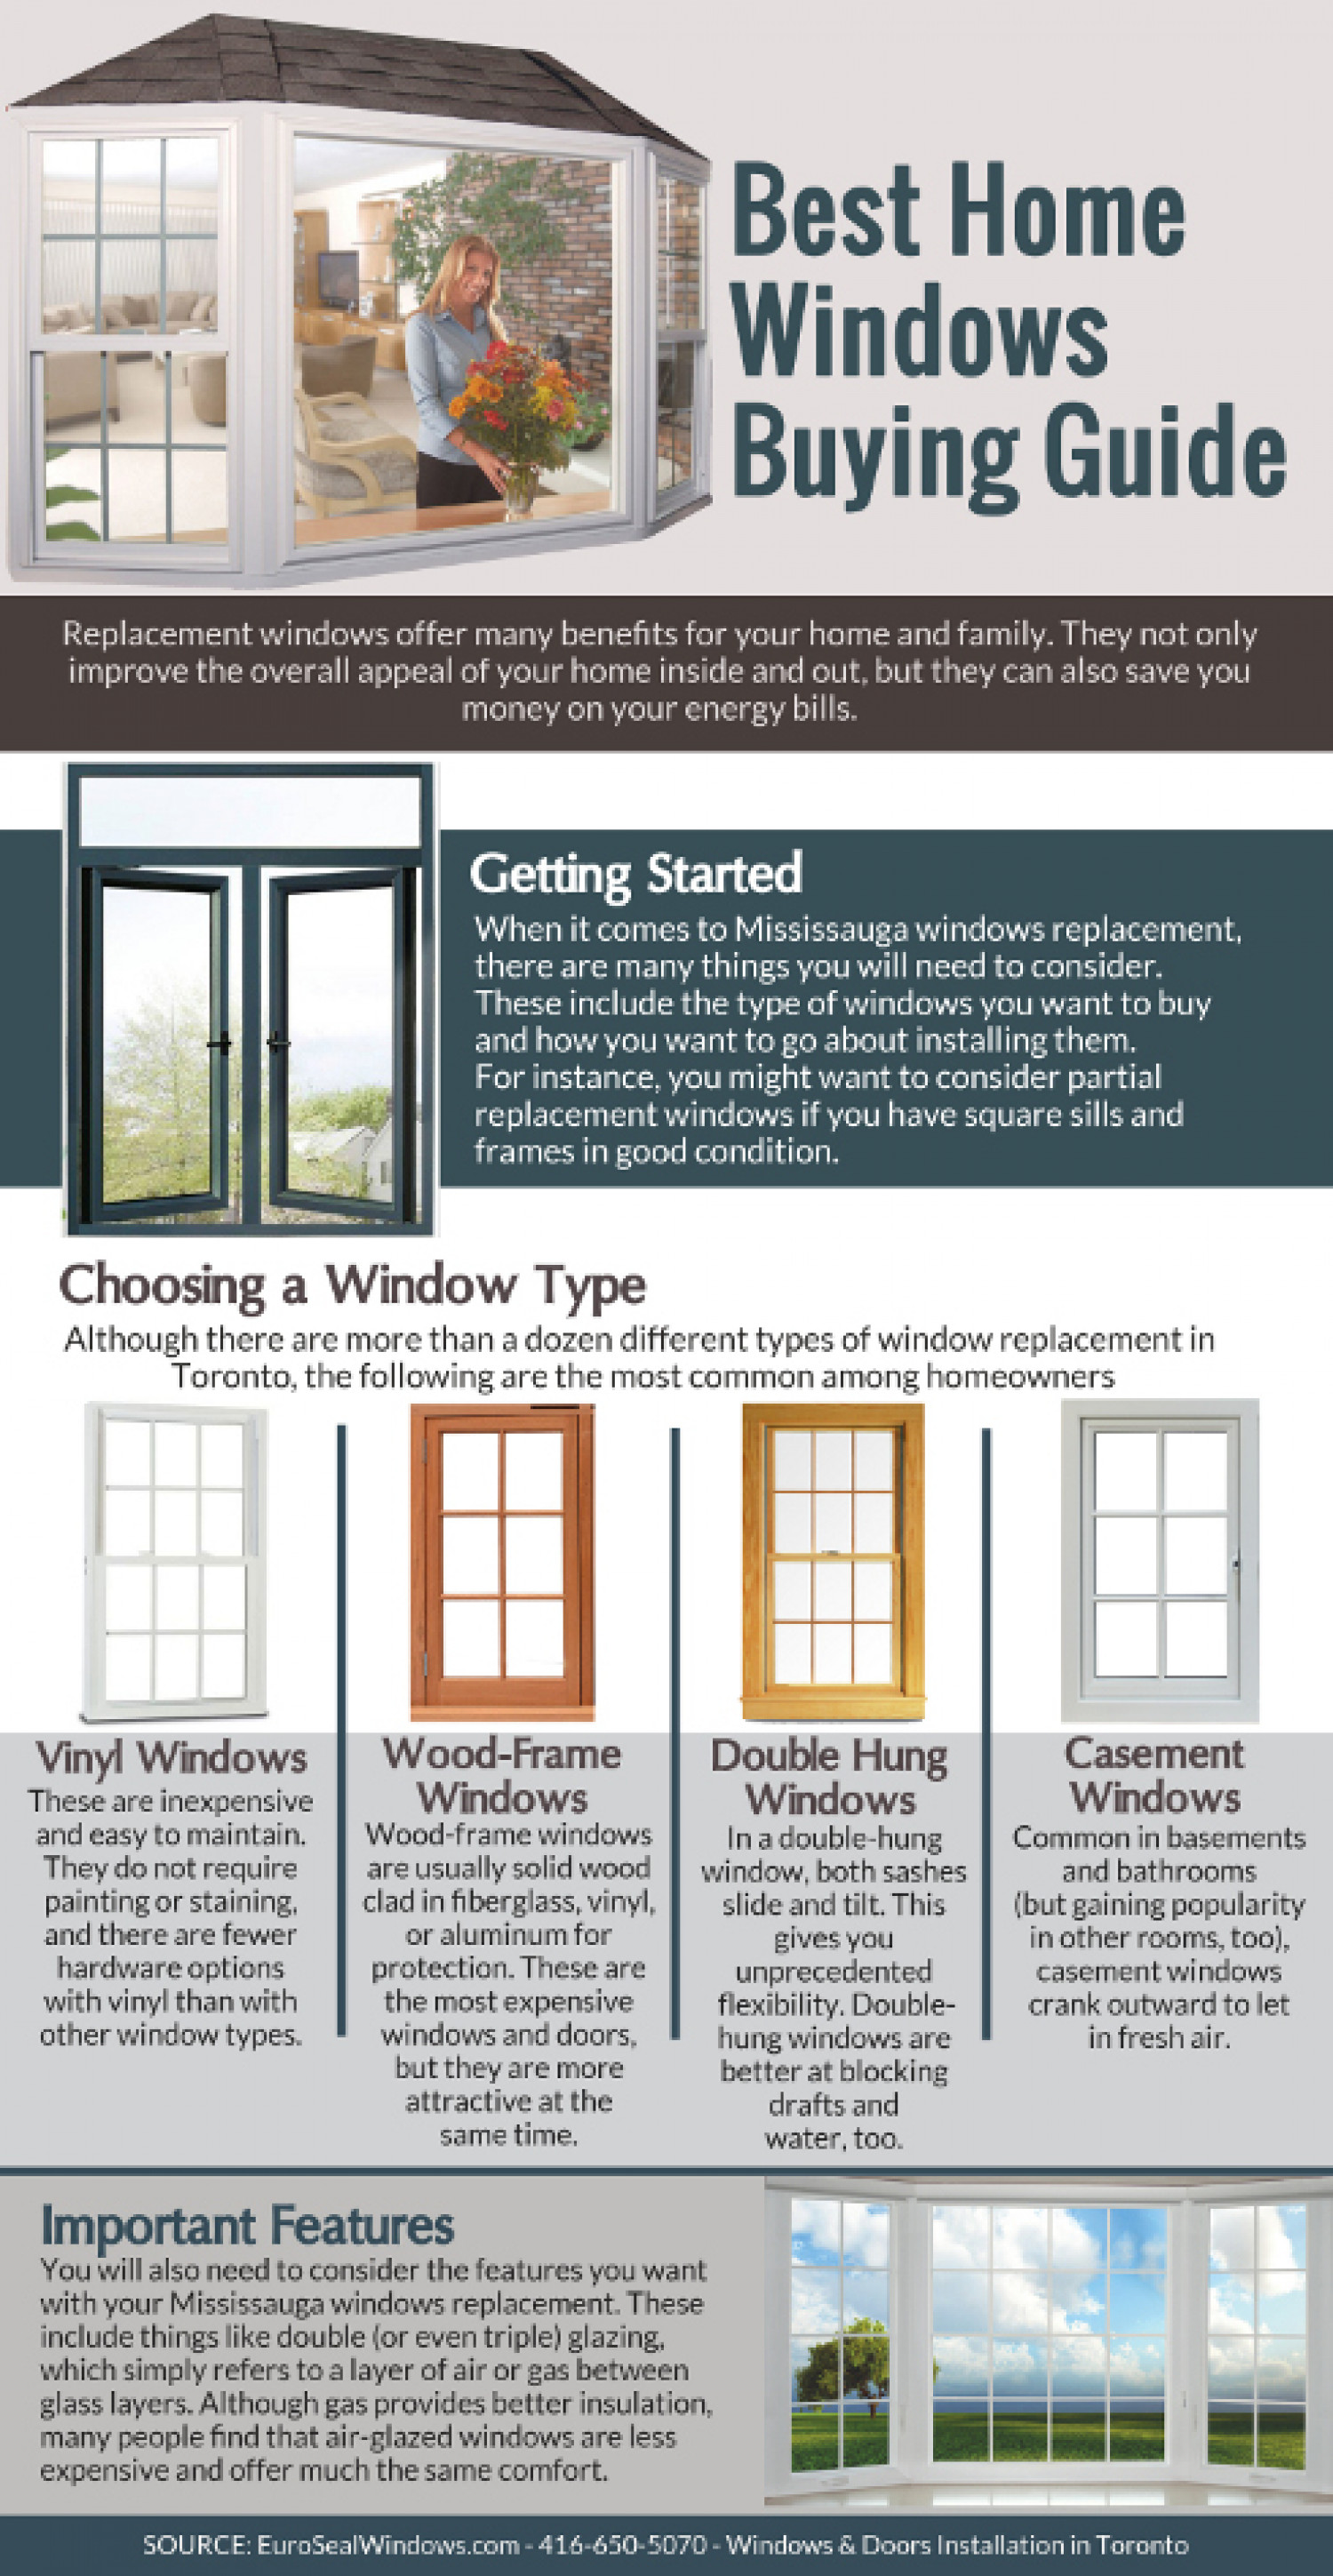 Best home windows buying guide for Purchase home windows